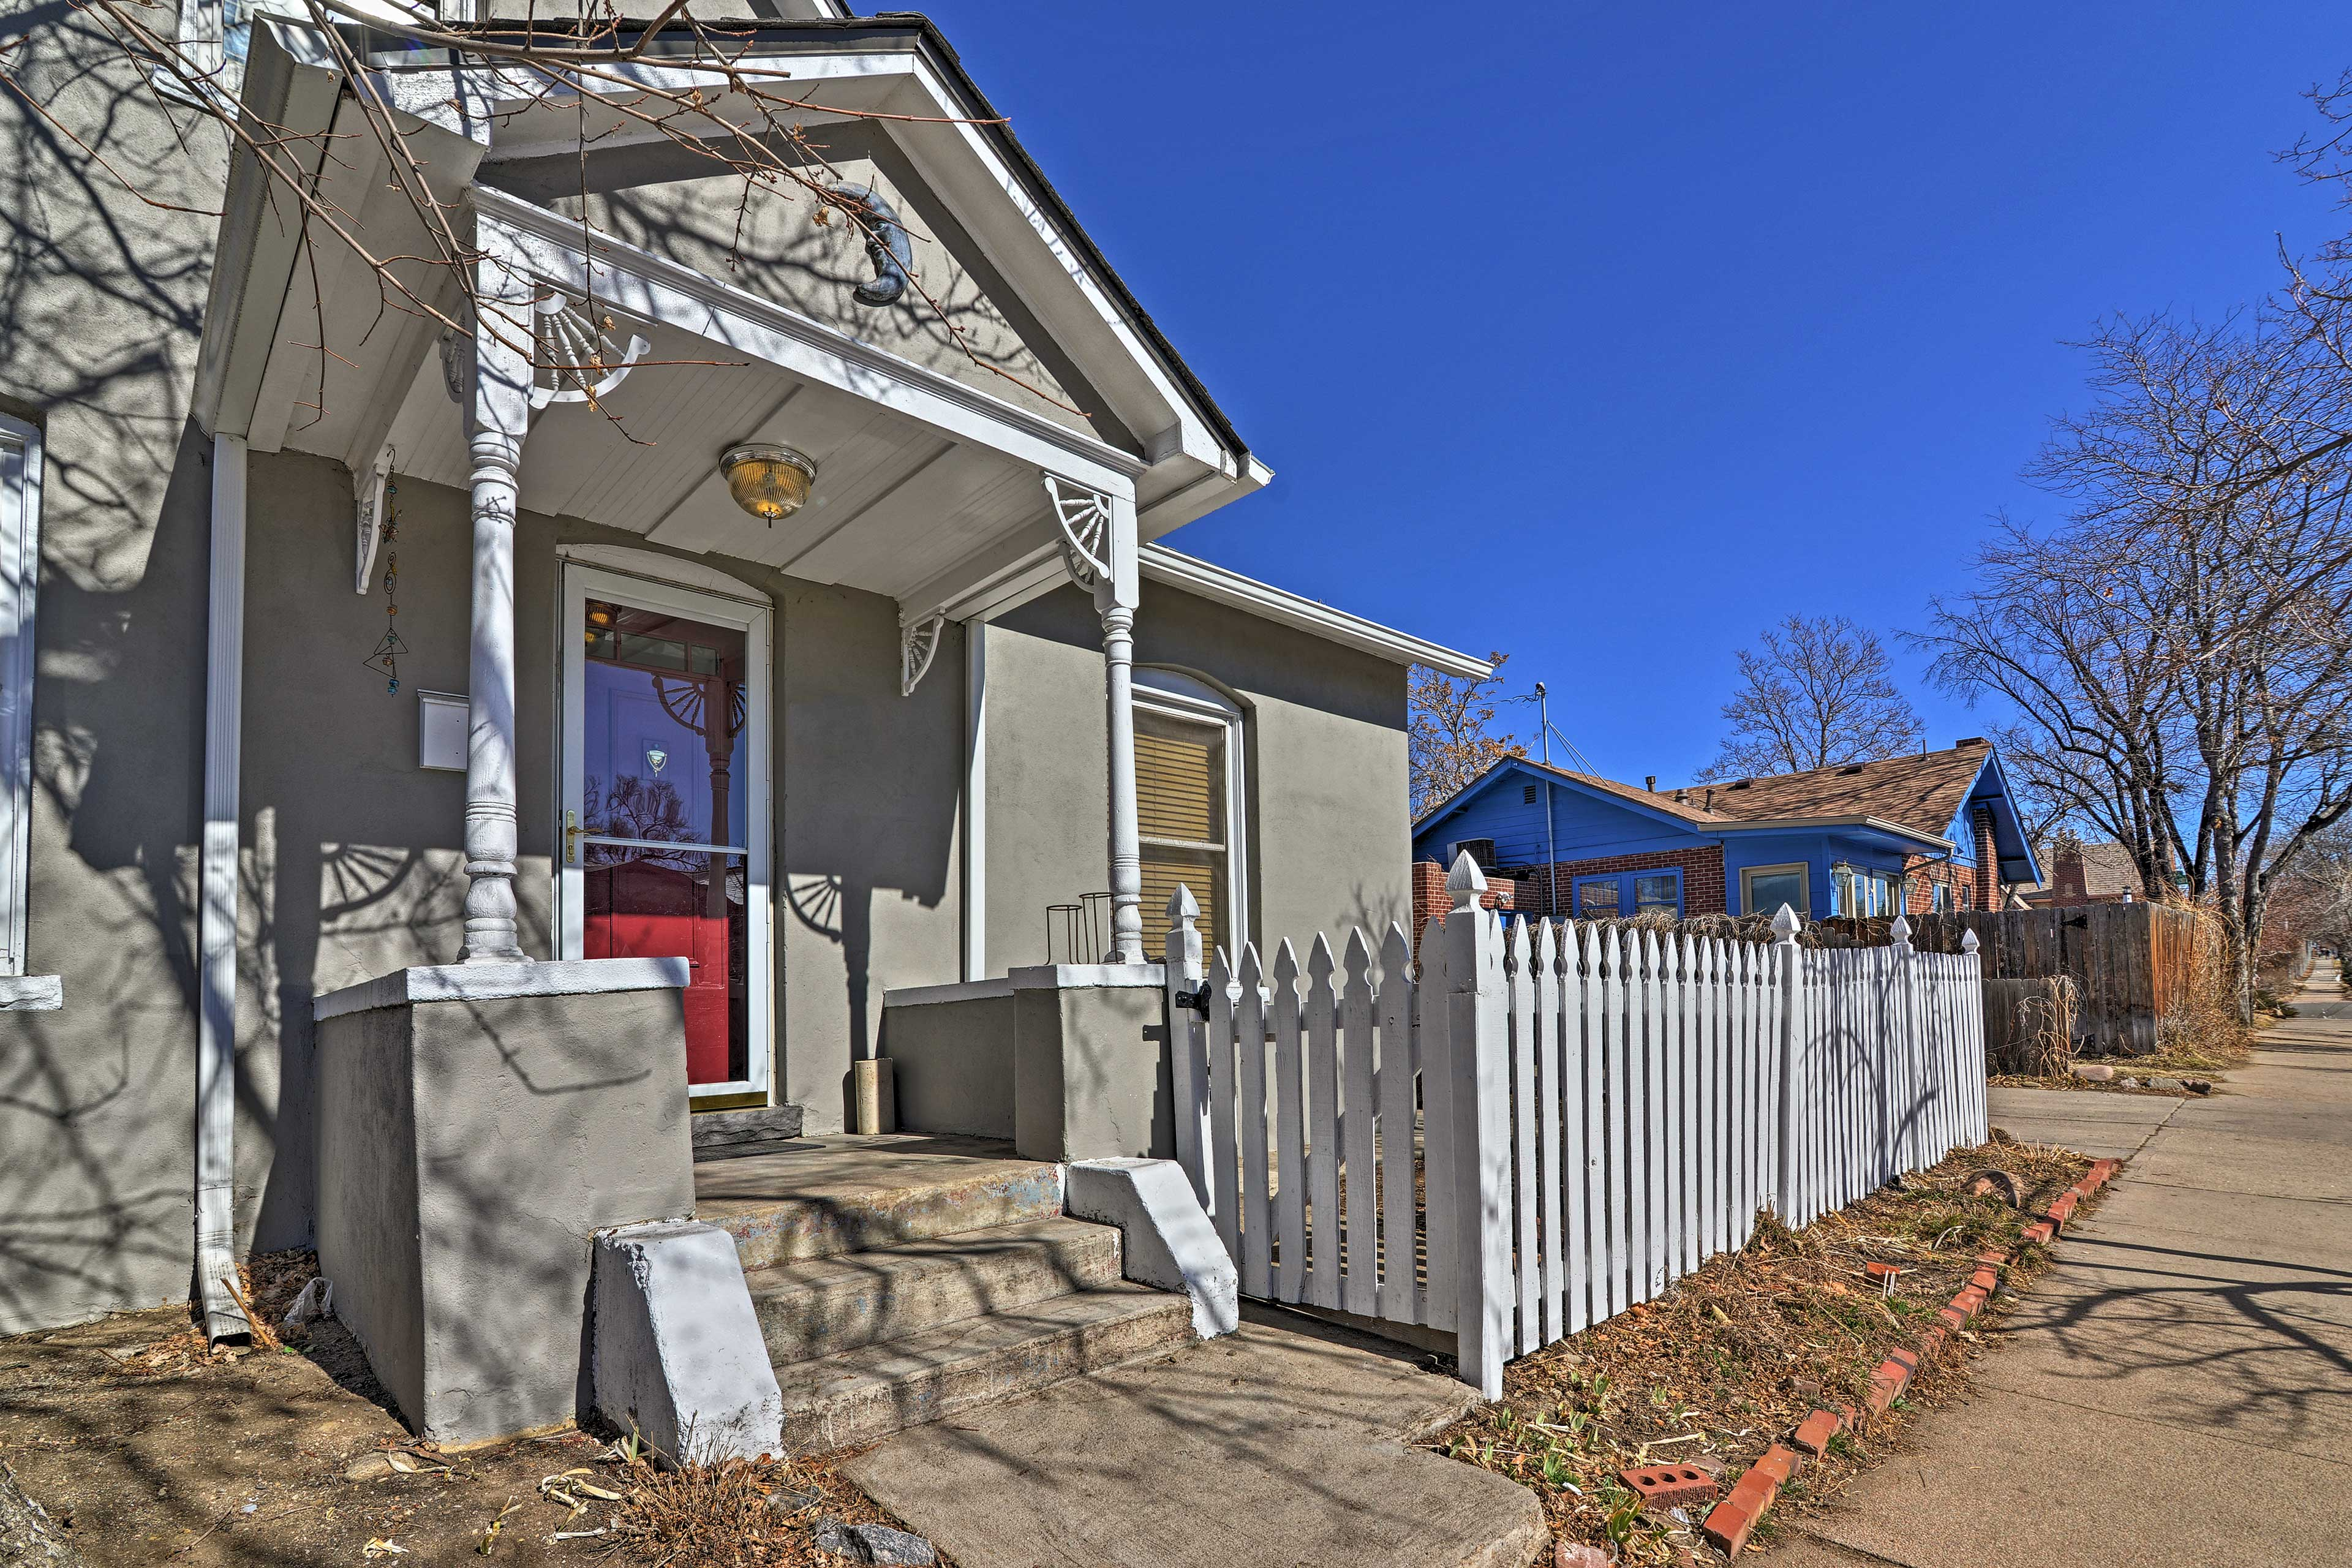 This house is within walking distance of Platt Park and South Pearl Street.